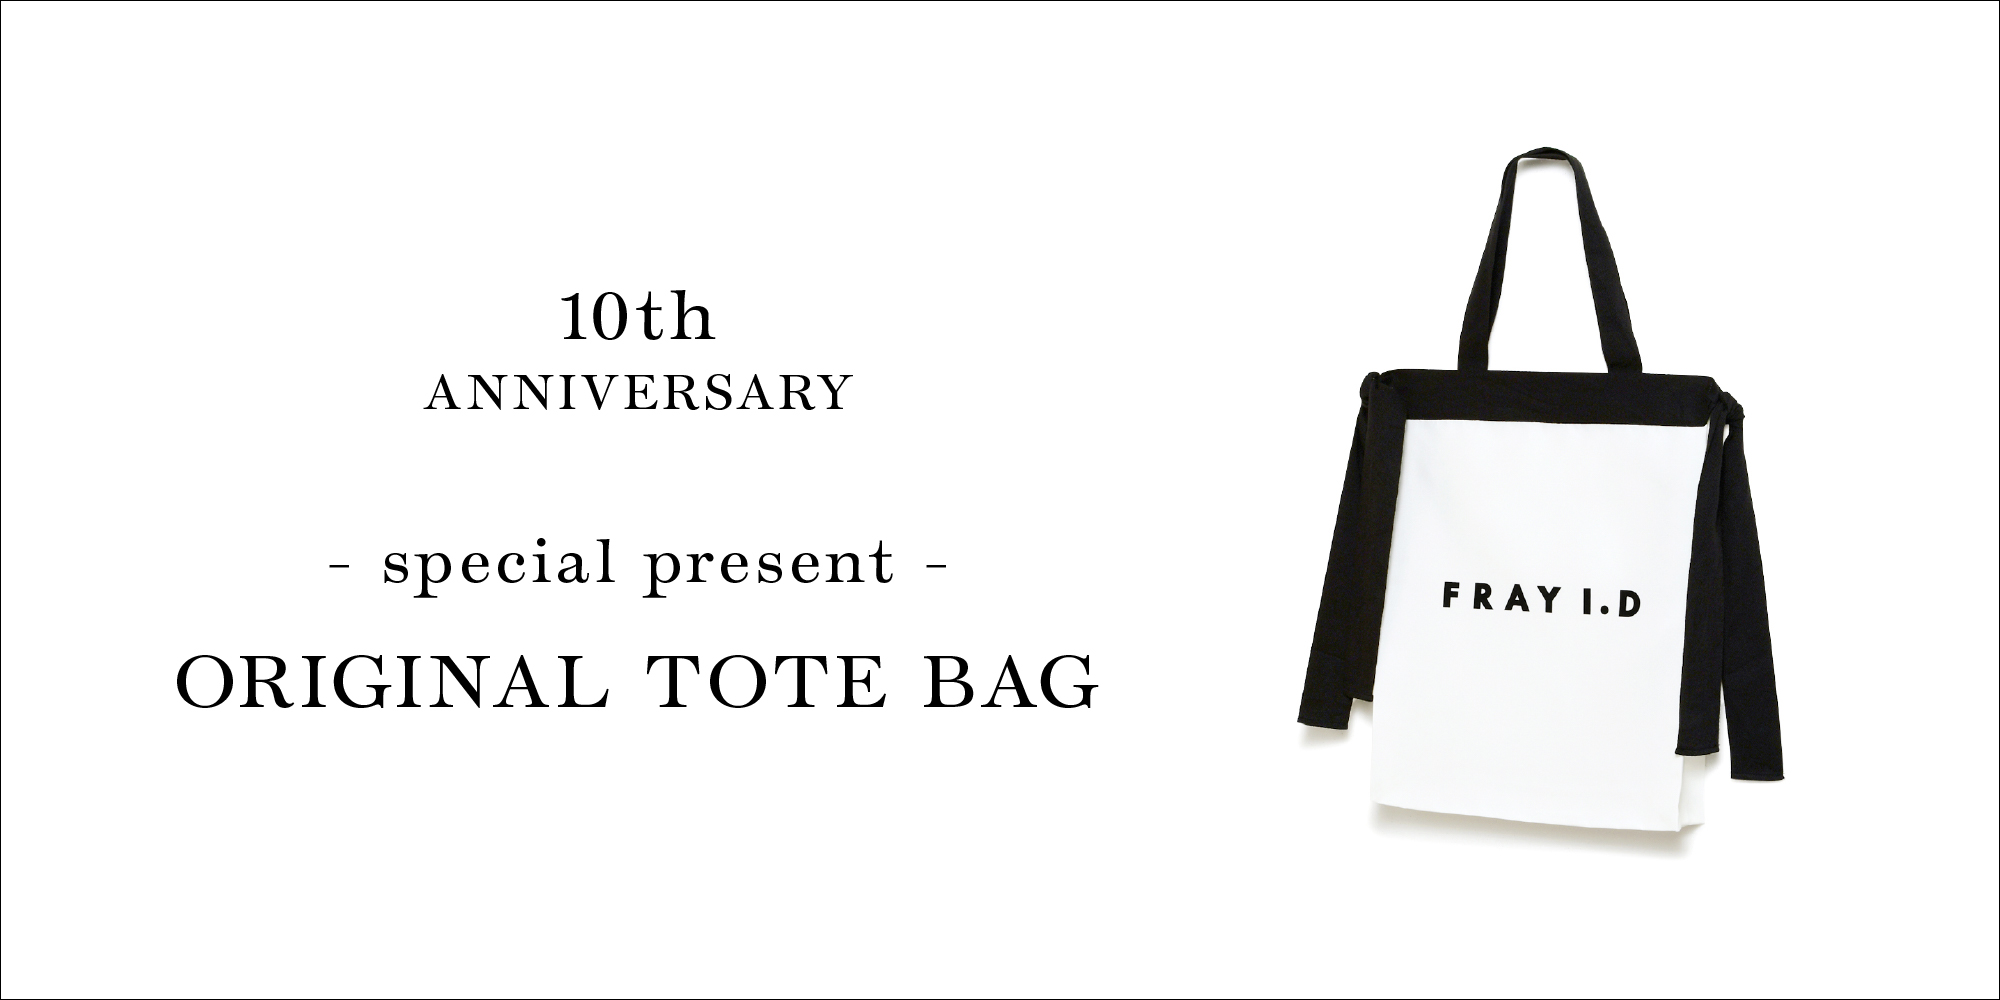 10th ANNIVERSARY - special present - ORIGINAL TOTE BAG